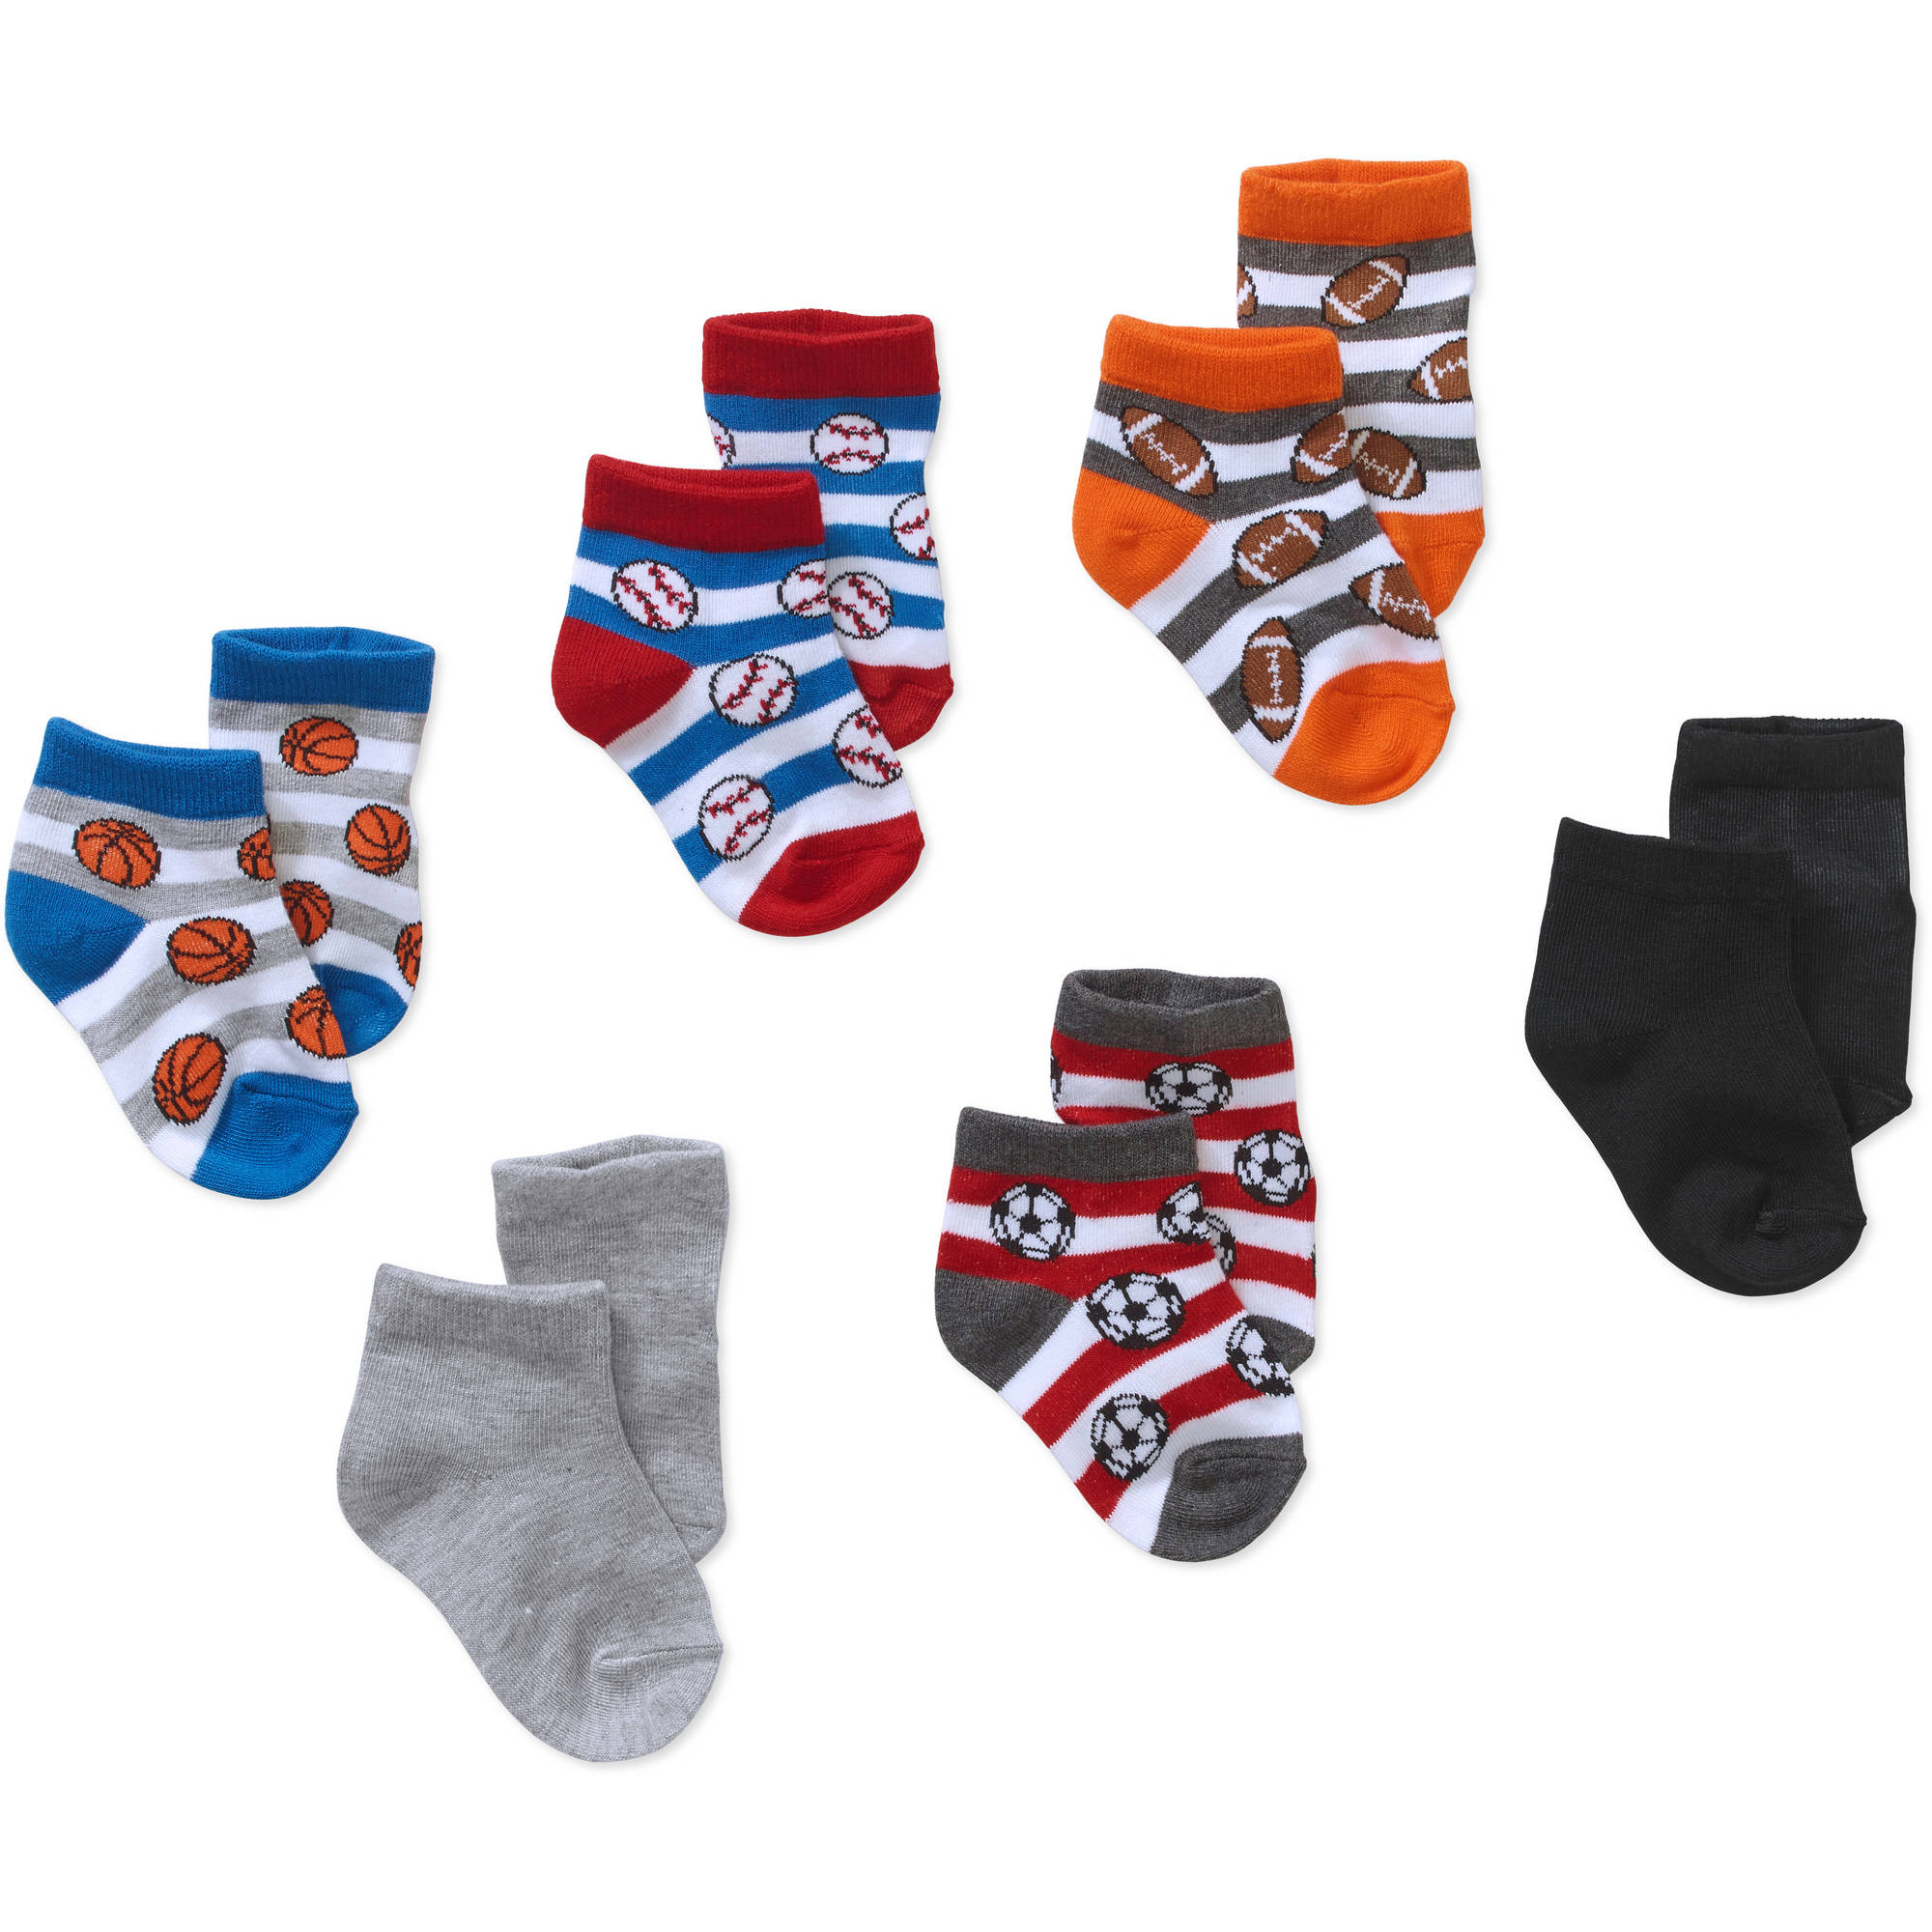 Garanimals Newborn to Toddler Baby Boy Shorty Baseball Print Socks, 6-Pack Ages 0-5T